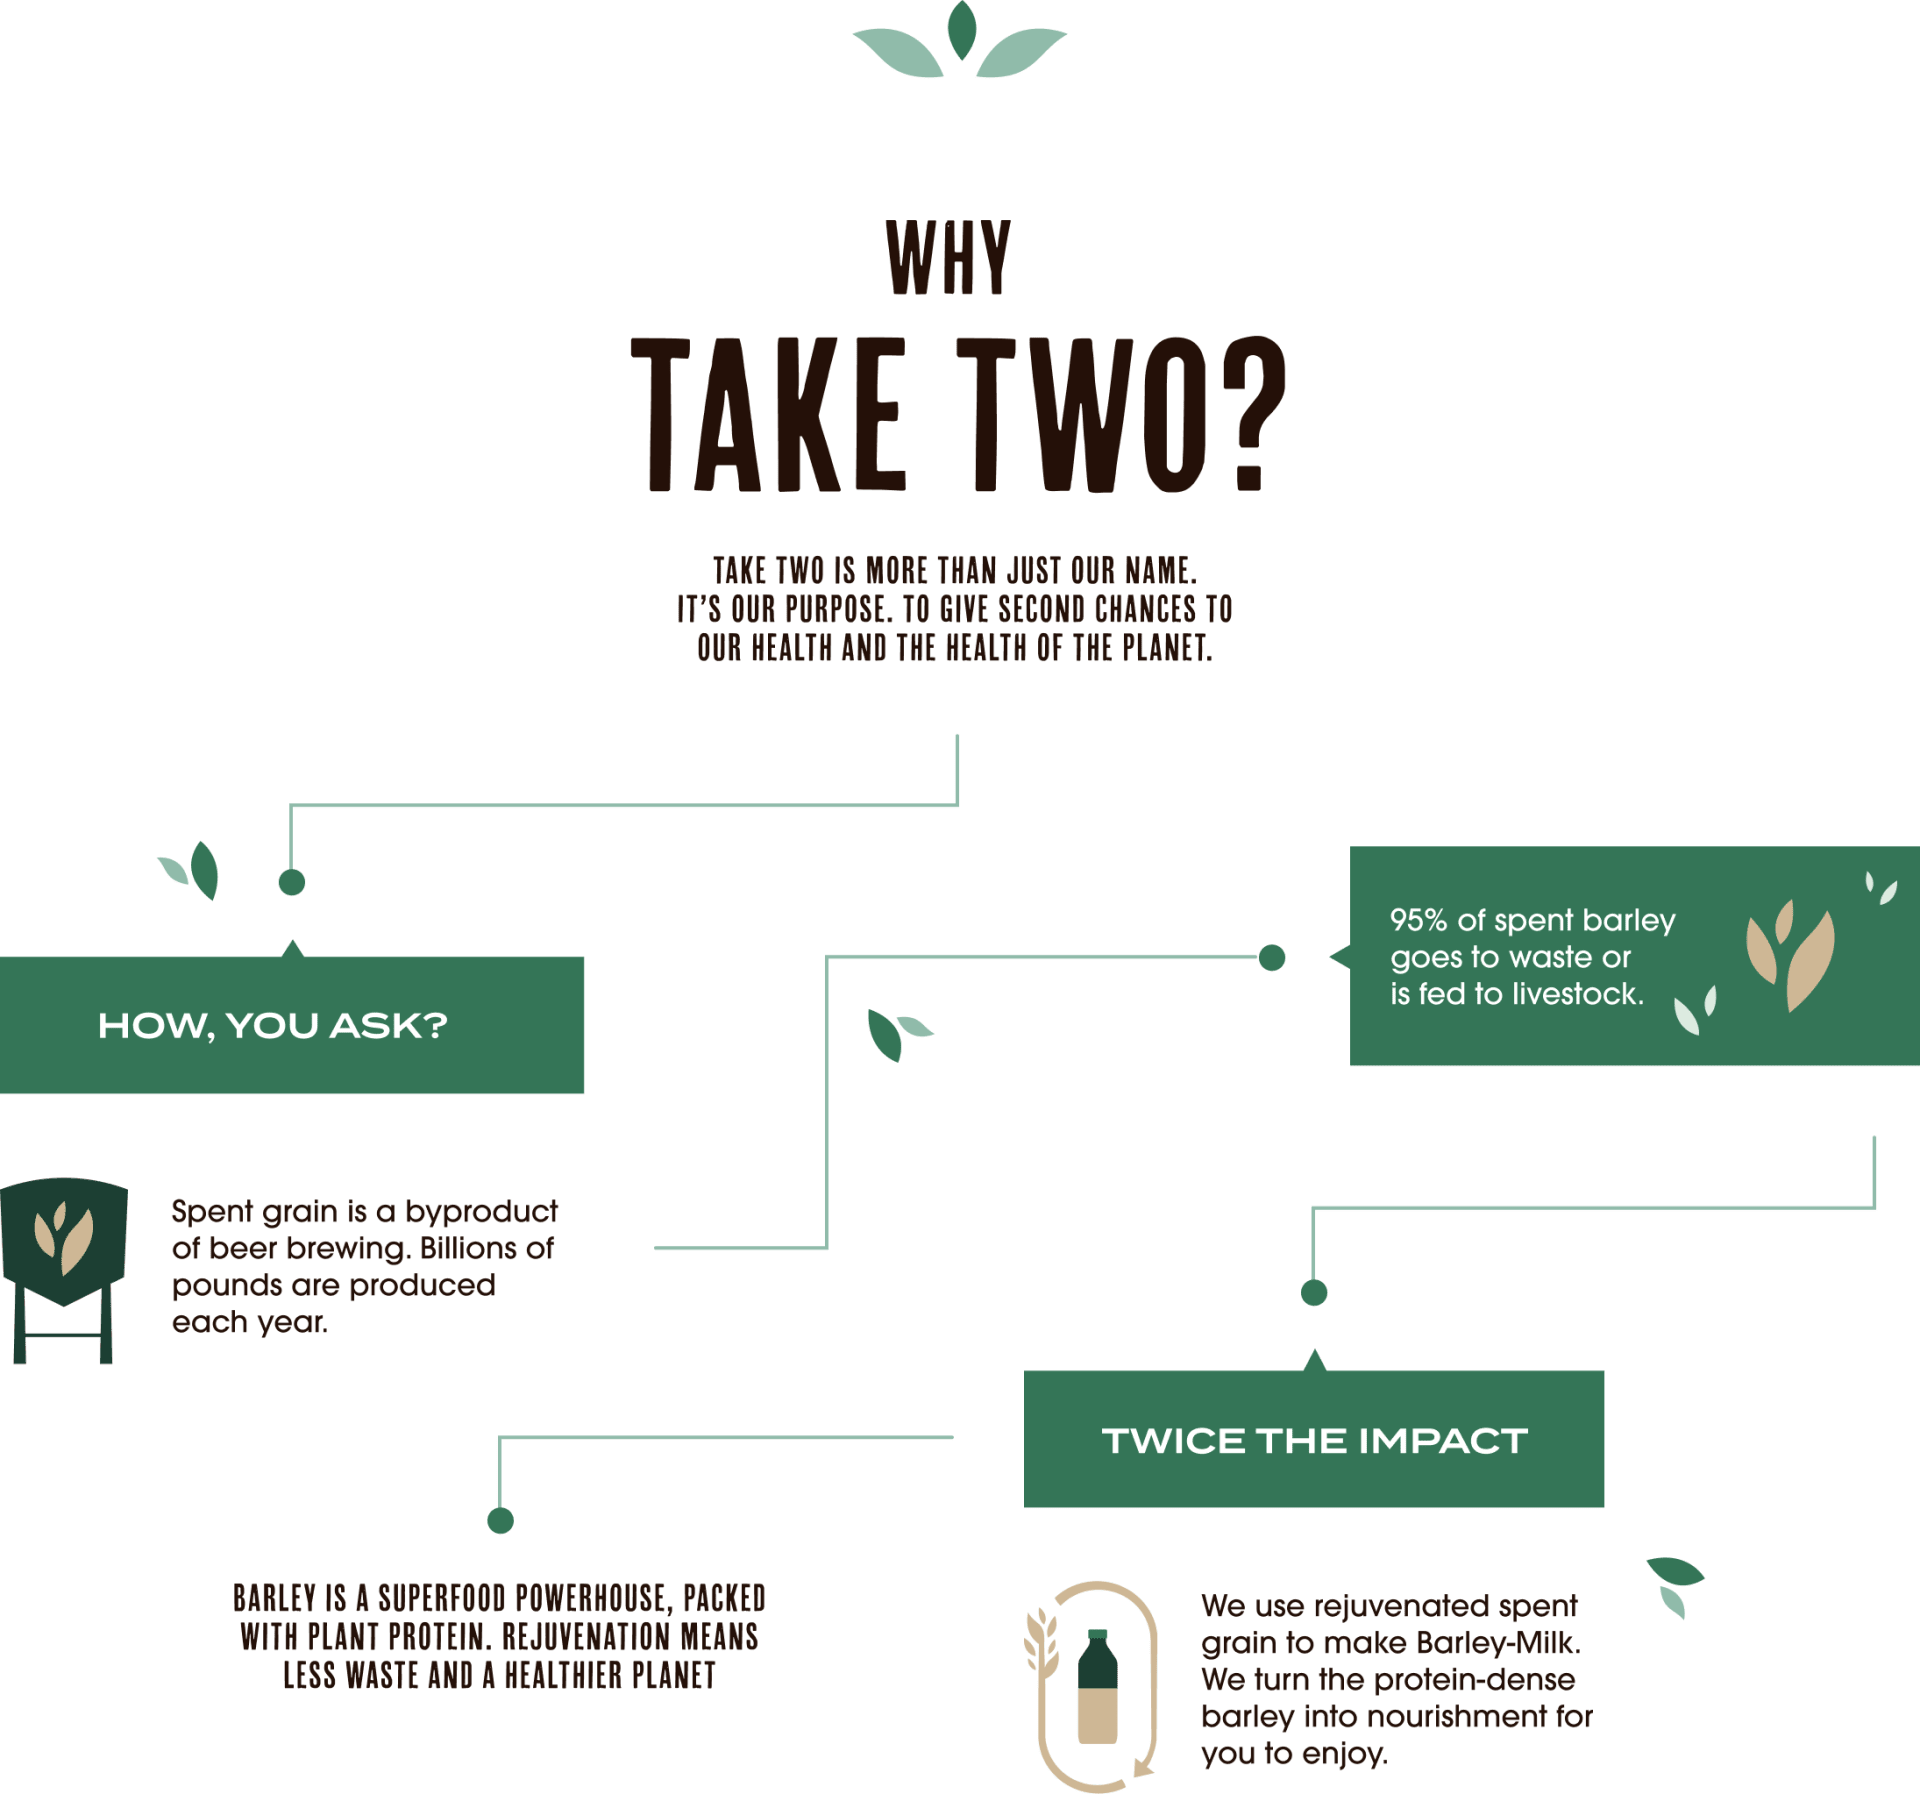 Why Take Two - an infographic outlining how Take Two takes spent grain from beer brewing (billions of pounds produced each year) and rejuvenates it to make Barley-Milk. Barley is a superfood powerhouse, packed with plant protein.